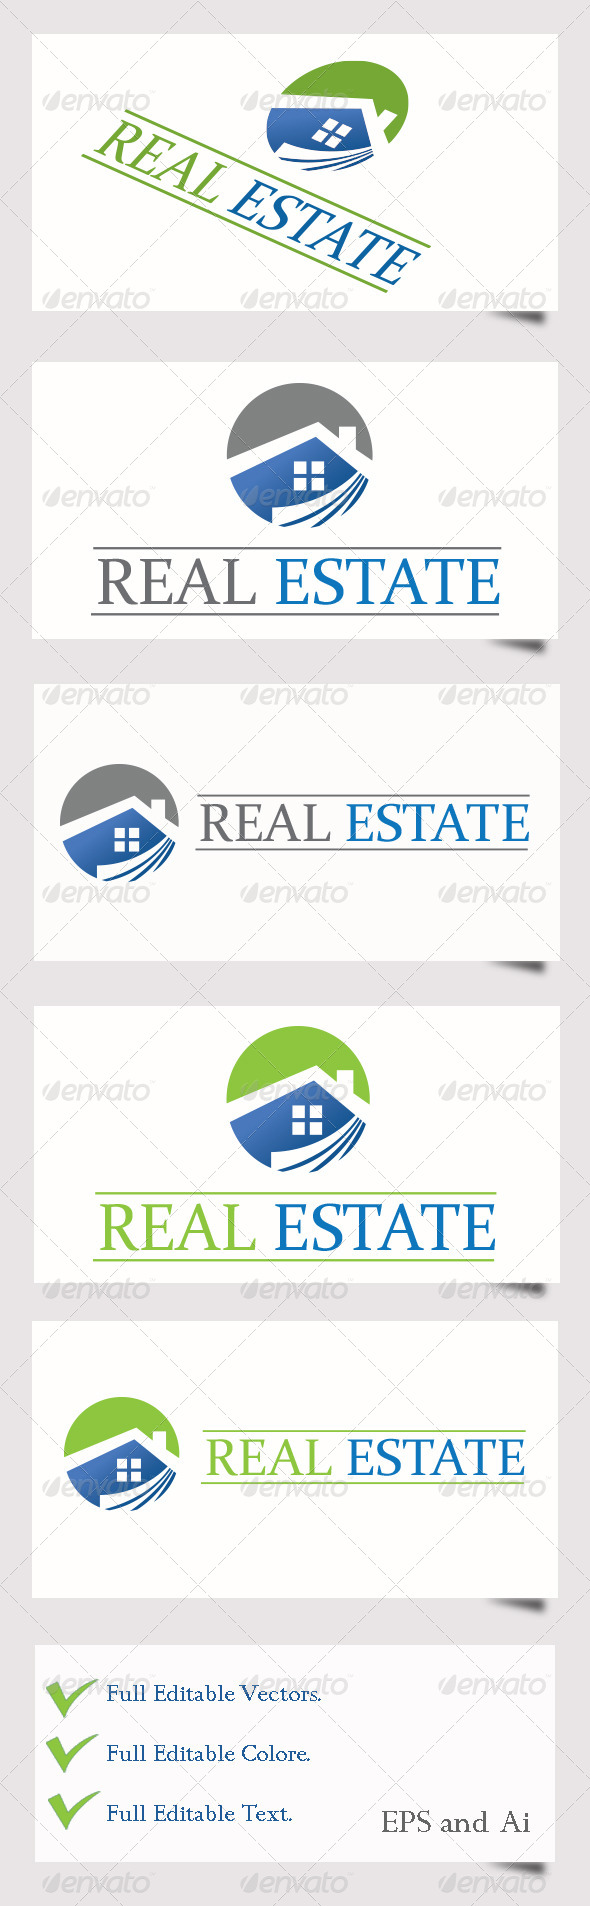 GraphicRiver Real Estate 5171919